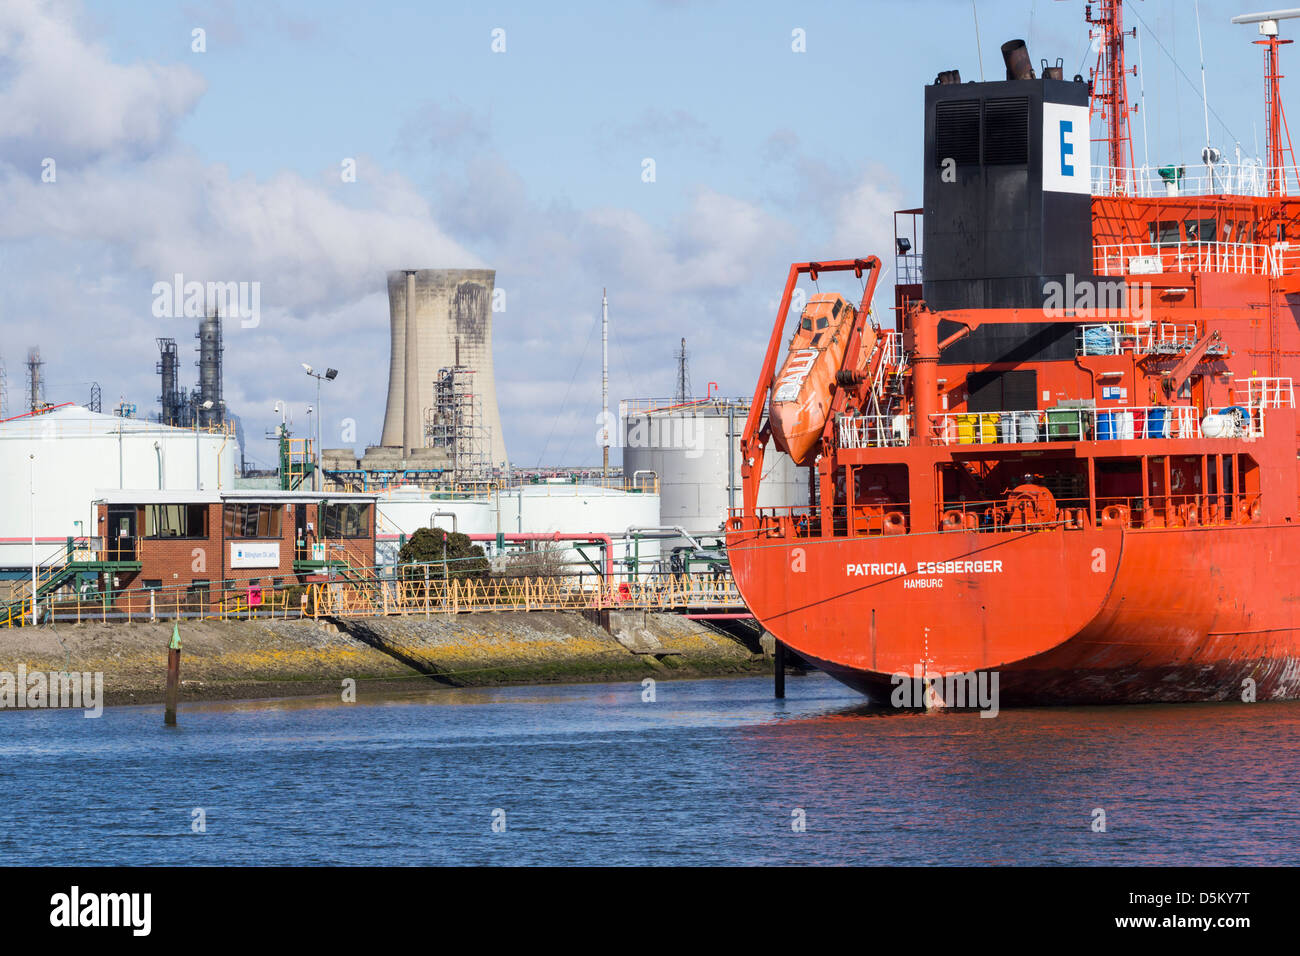 Oil tanker at Billingham oil jetty on the river Tees at Middlesbrough, north east England, UK - Stock Image